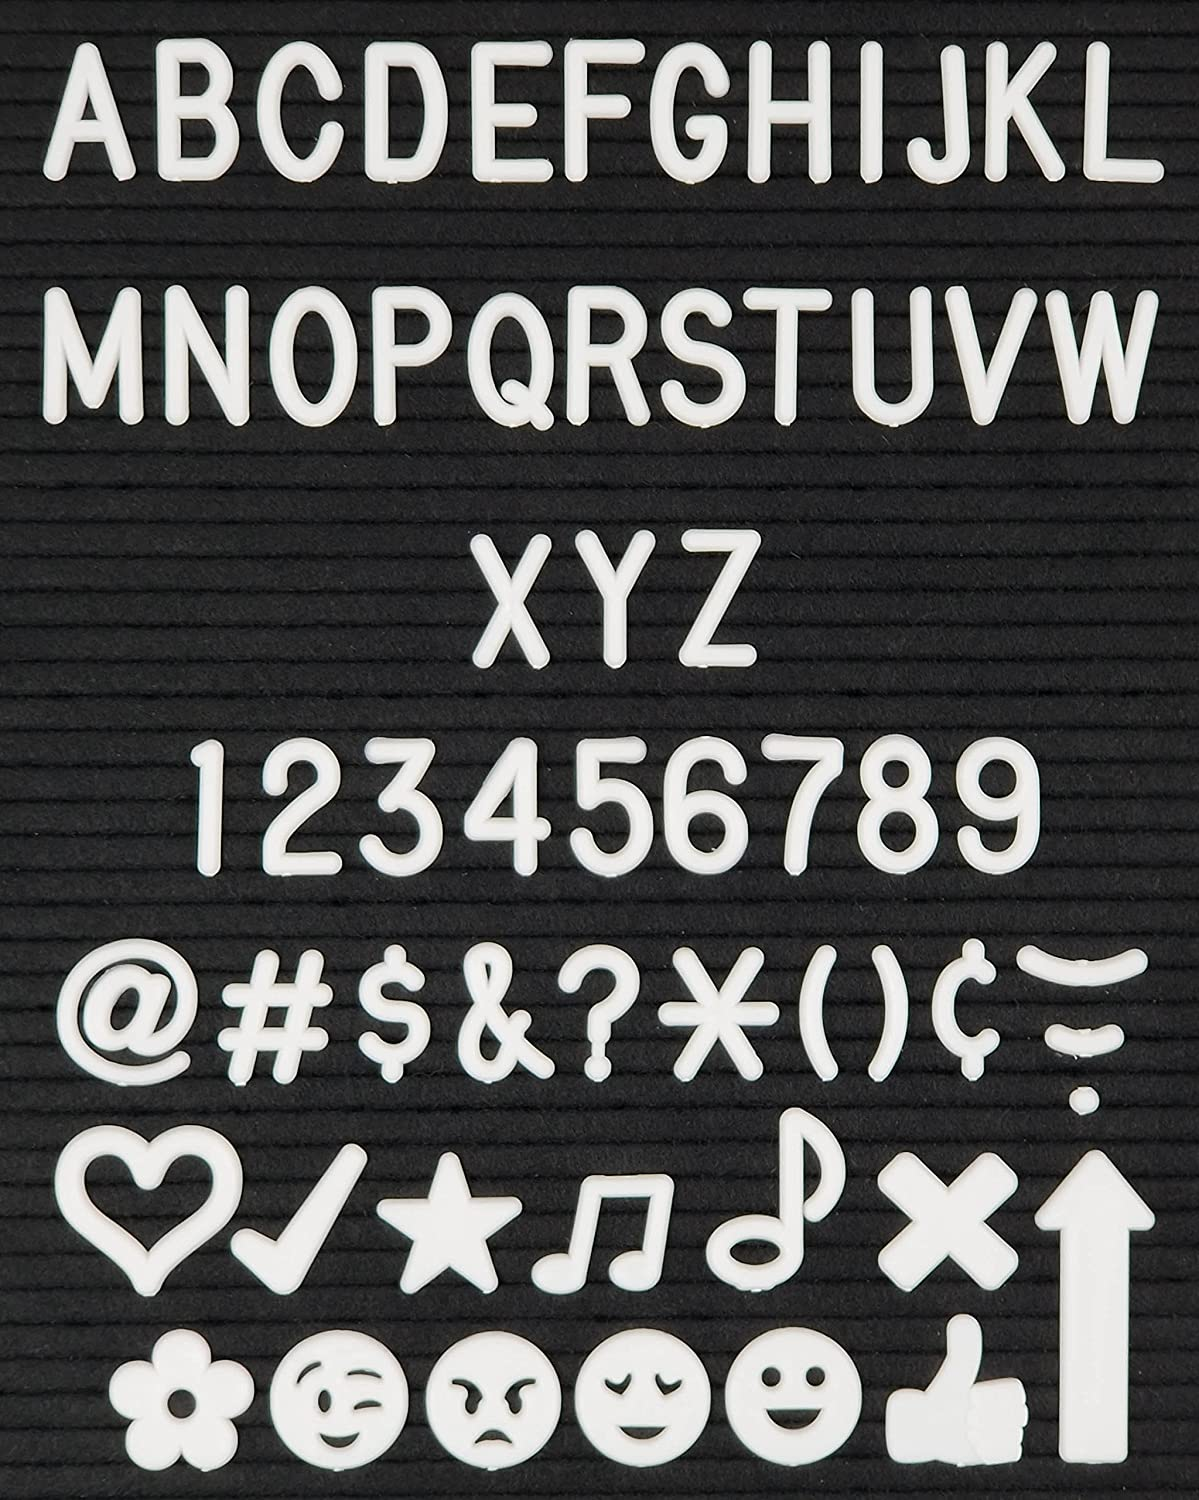 Numbers and Symbols for Changeable Letter Boards 2 2 Large Letter Set for Felt Letter Board 164 Piece White Letters